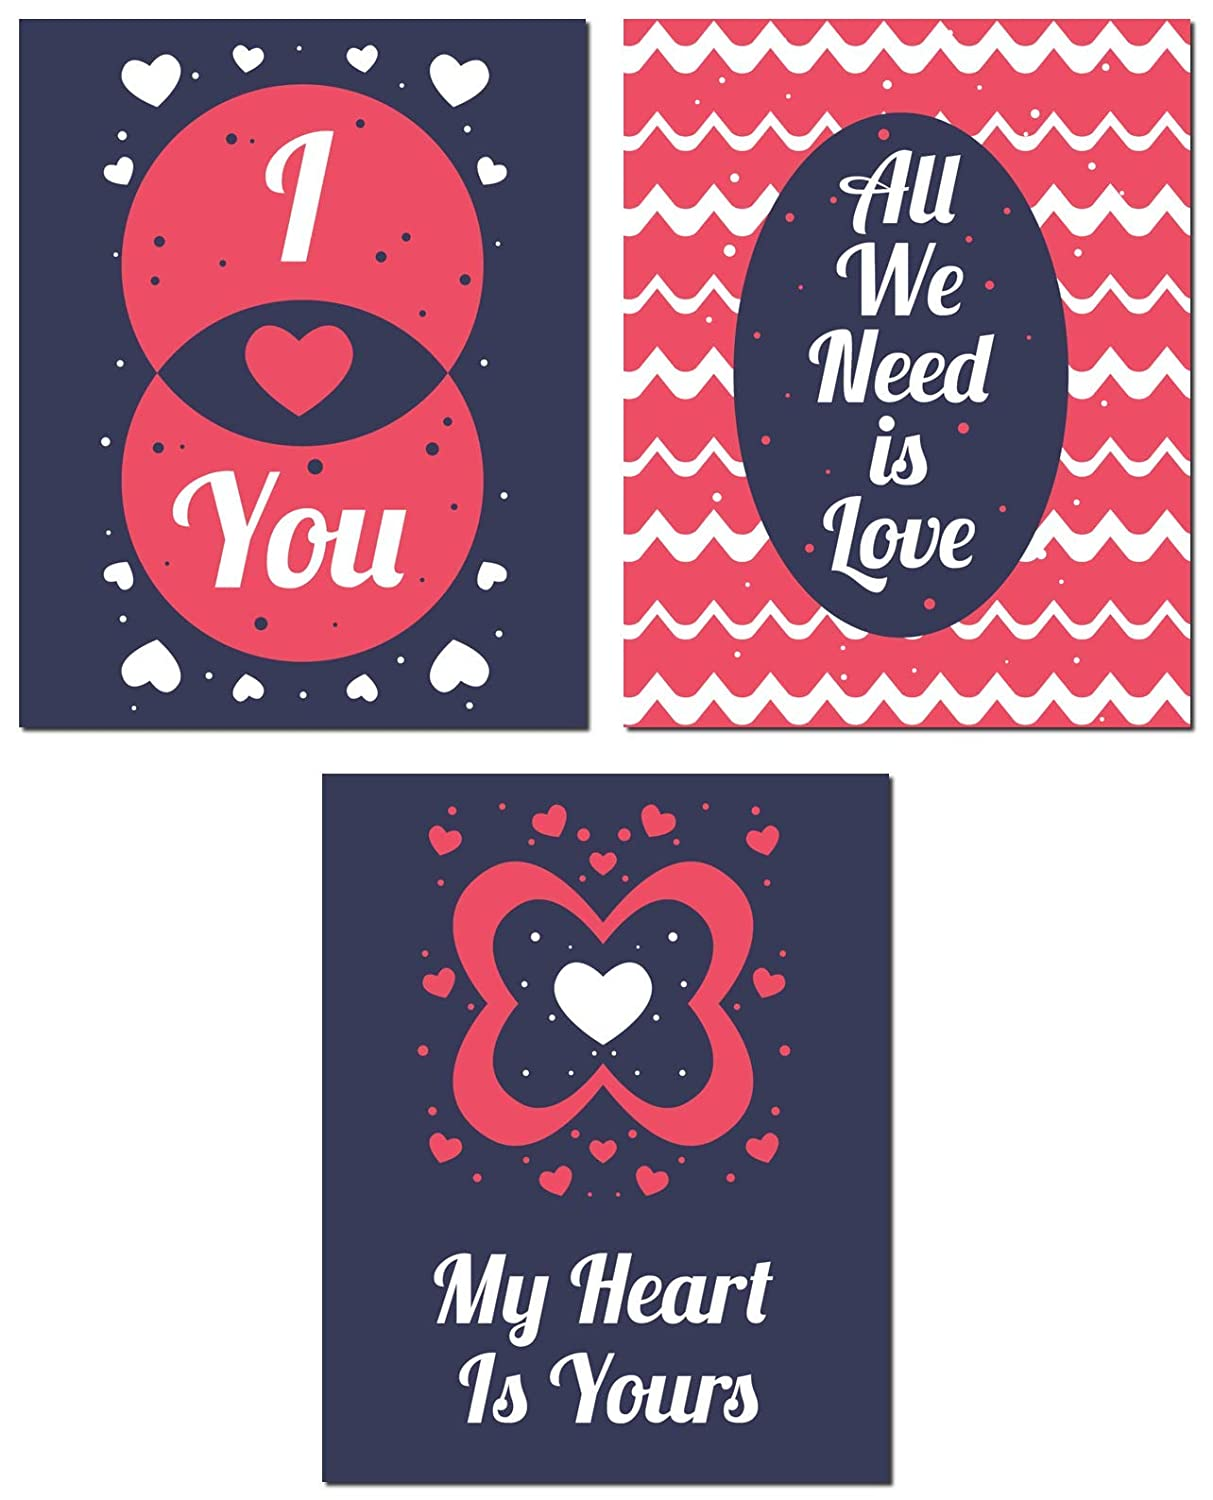 Bedroom Decor Wall Art - Beautiful And Decorative - Anniversay Valentine Husband Wife Gift - I Love You - Red Blue Design - Unframed…